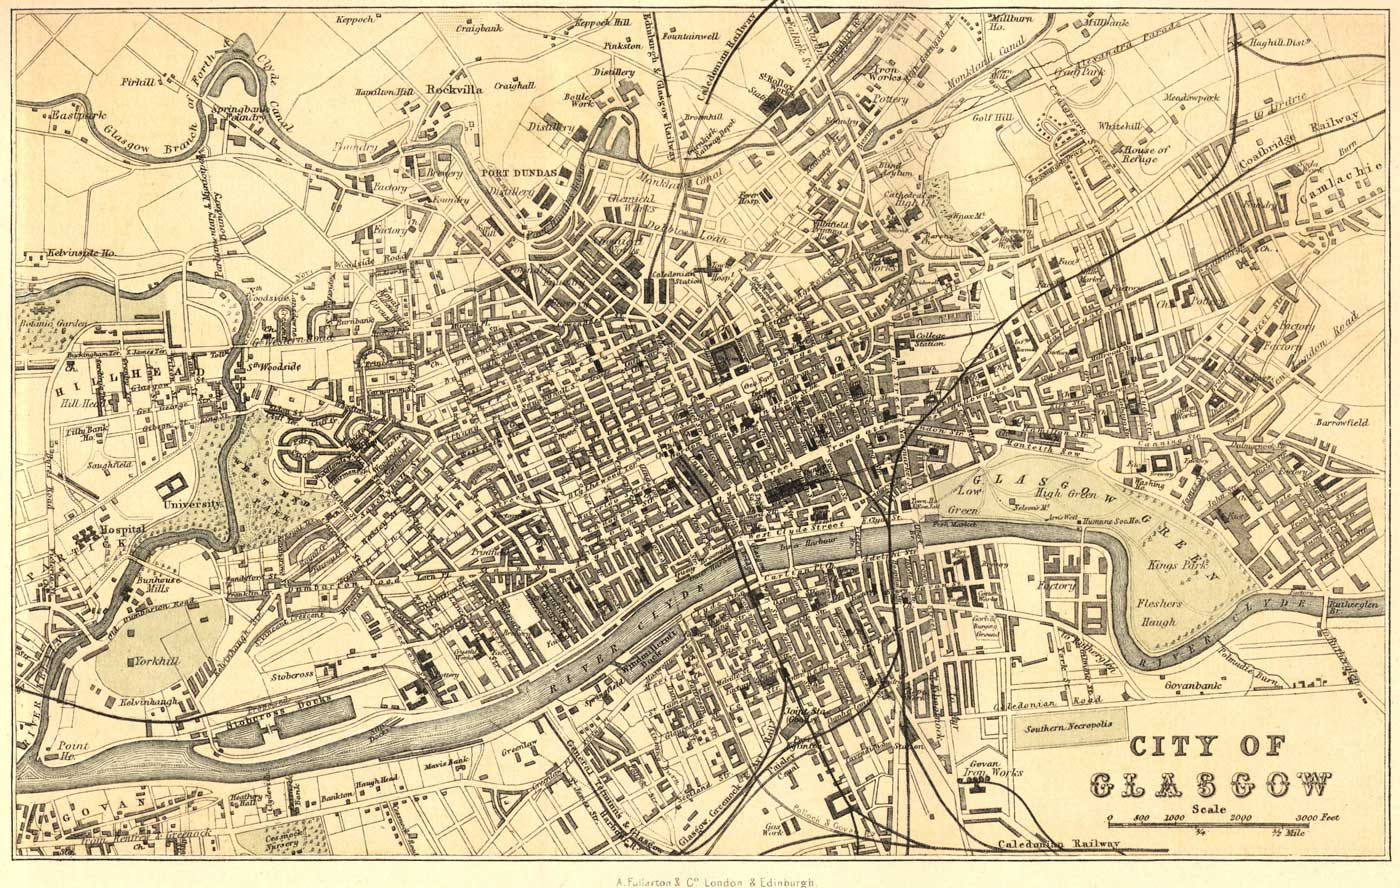 Old Map of Glasgow large map